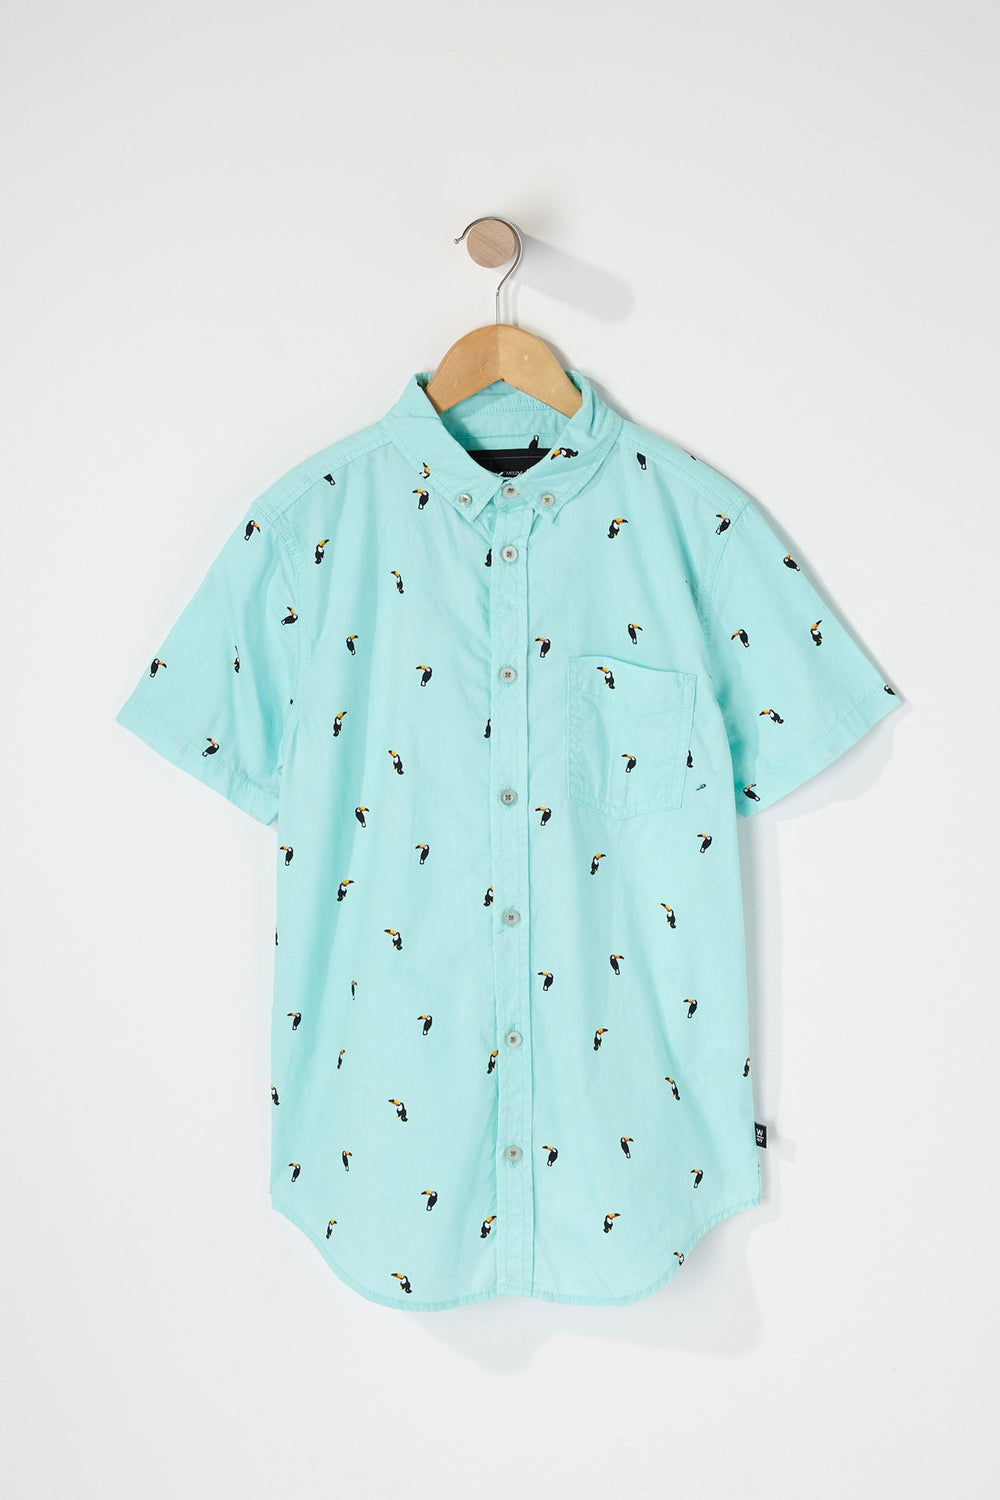 West49 Boys Tropical Ditsy Print Button Up Shirt Sage